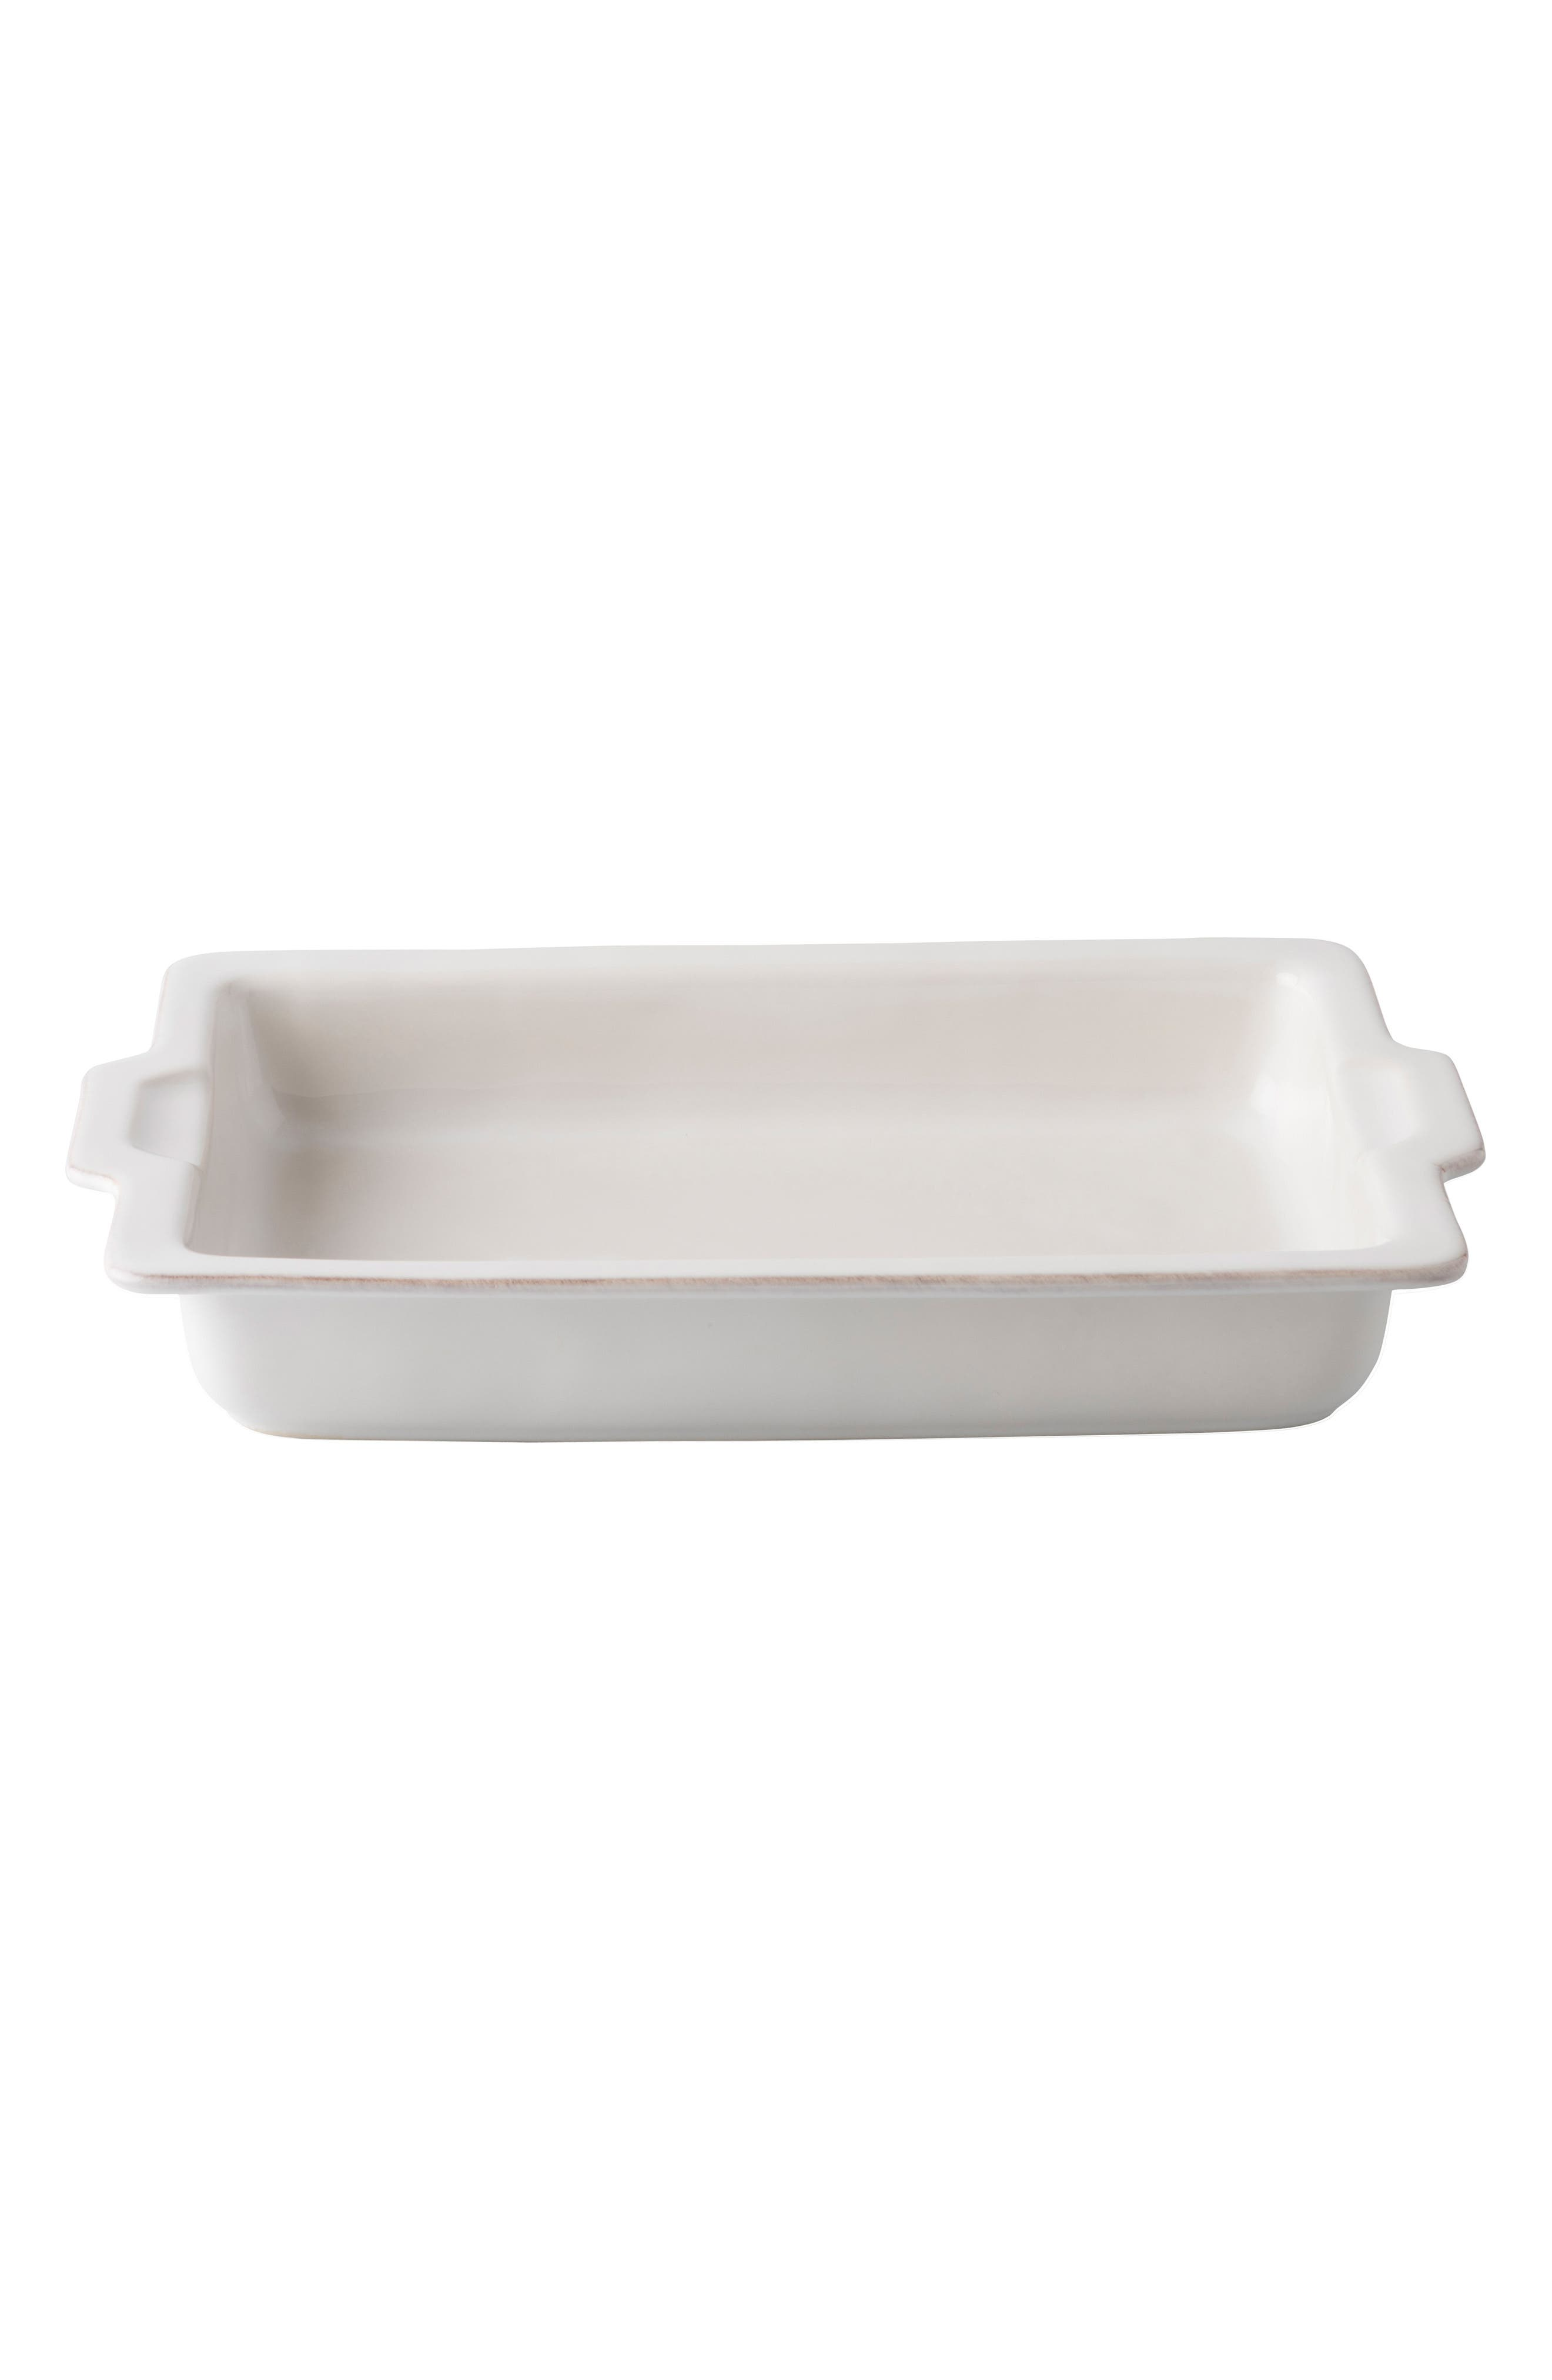 Main Image - Juliska Puro Large Ceramic Baking Dish